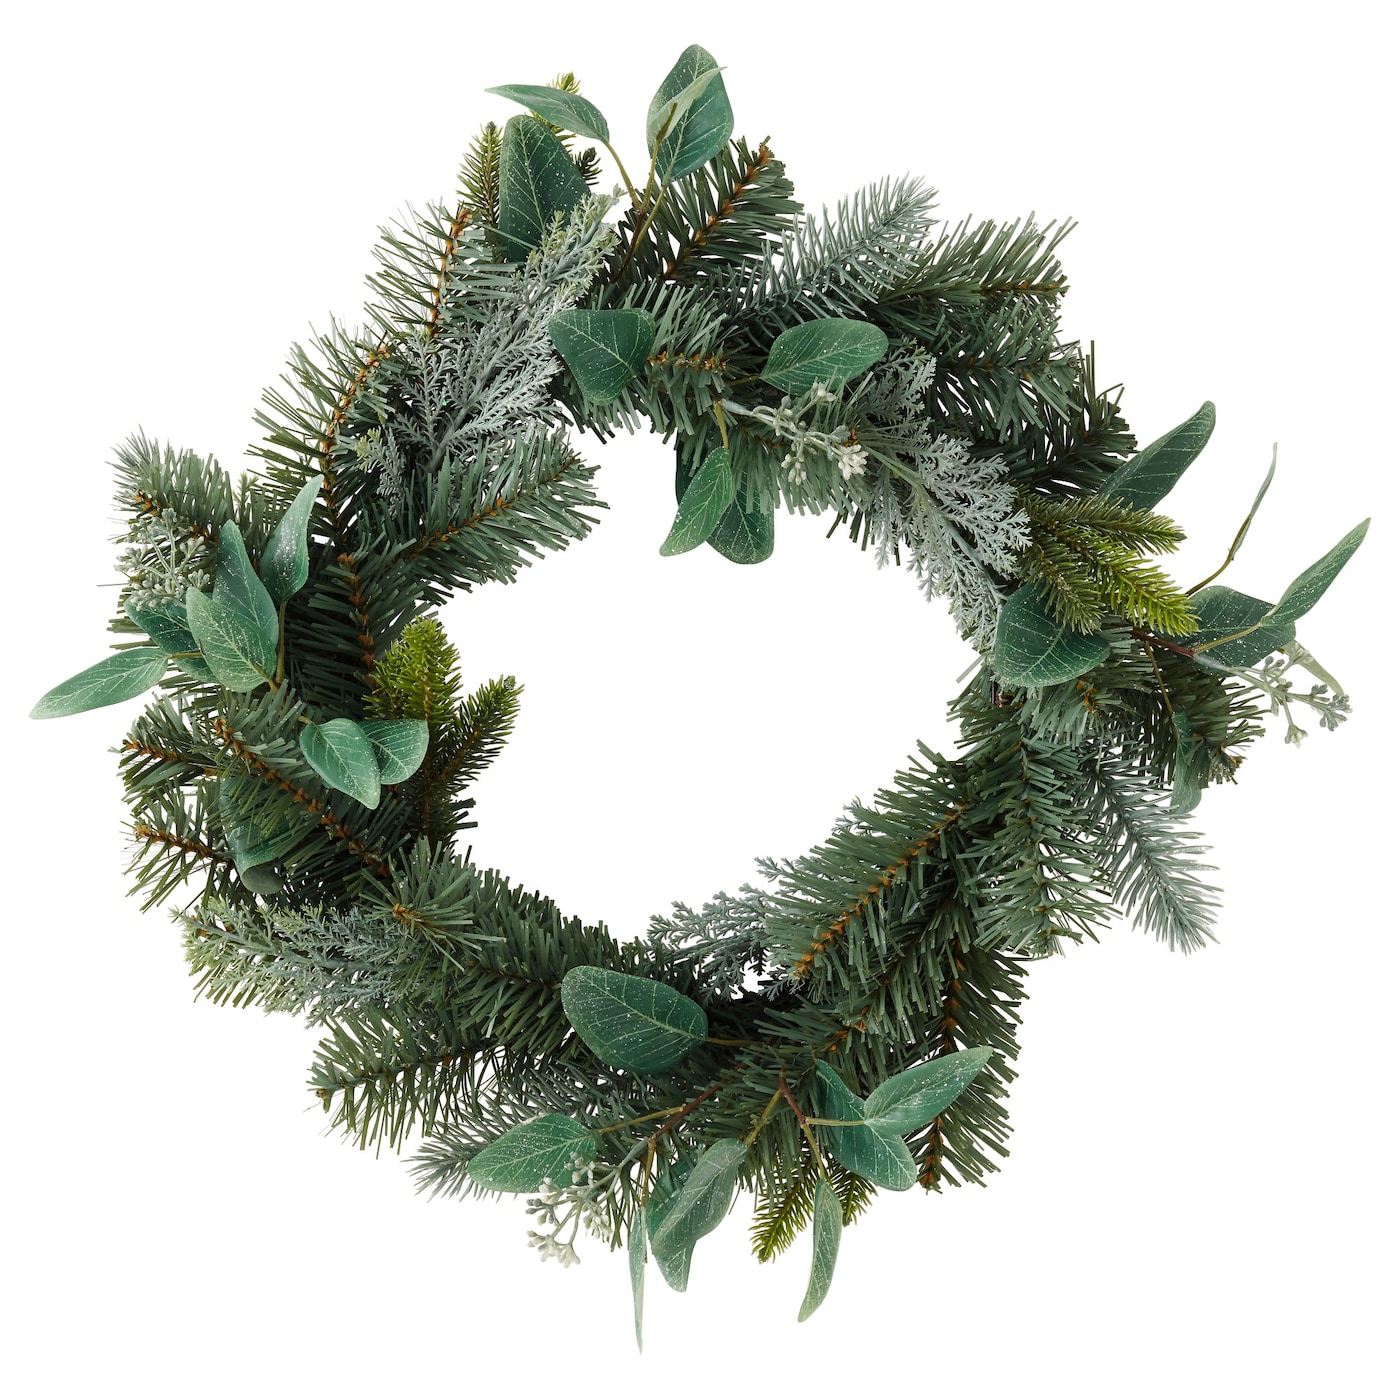 IKEA SMYCKA artificial wreath